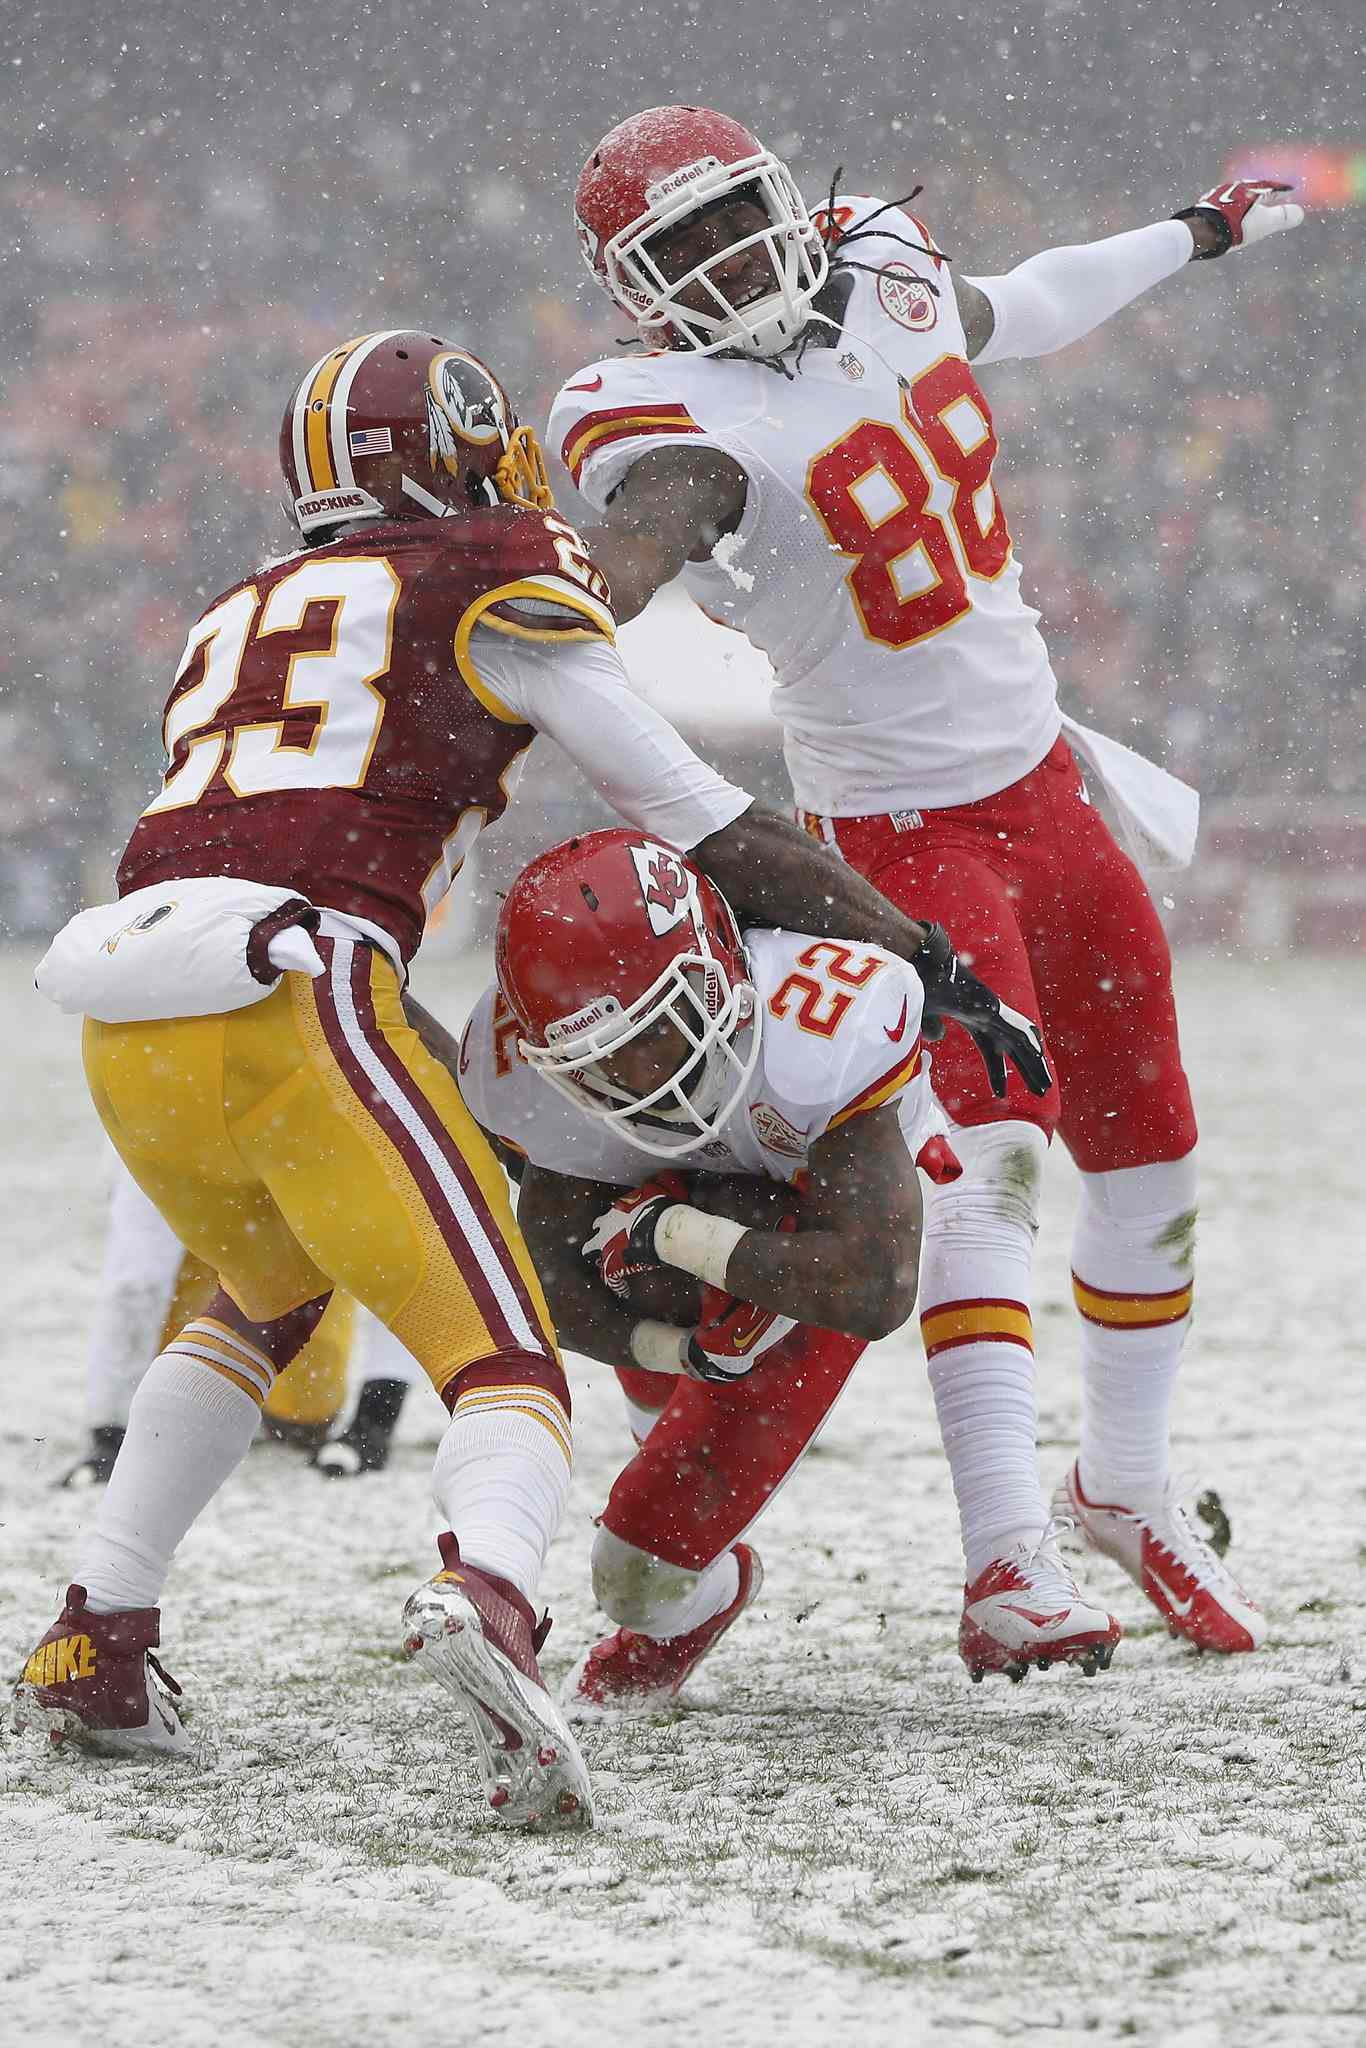 Kansas City Chiefs wide receiver Dexter McCluster (bottom) slides between Washington Redskins cornerback DeAngelo Hall (left) and wide receiver Junior Hemingway (88) during the first half of an NFL football game in Landover, Md. on Sunday.